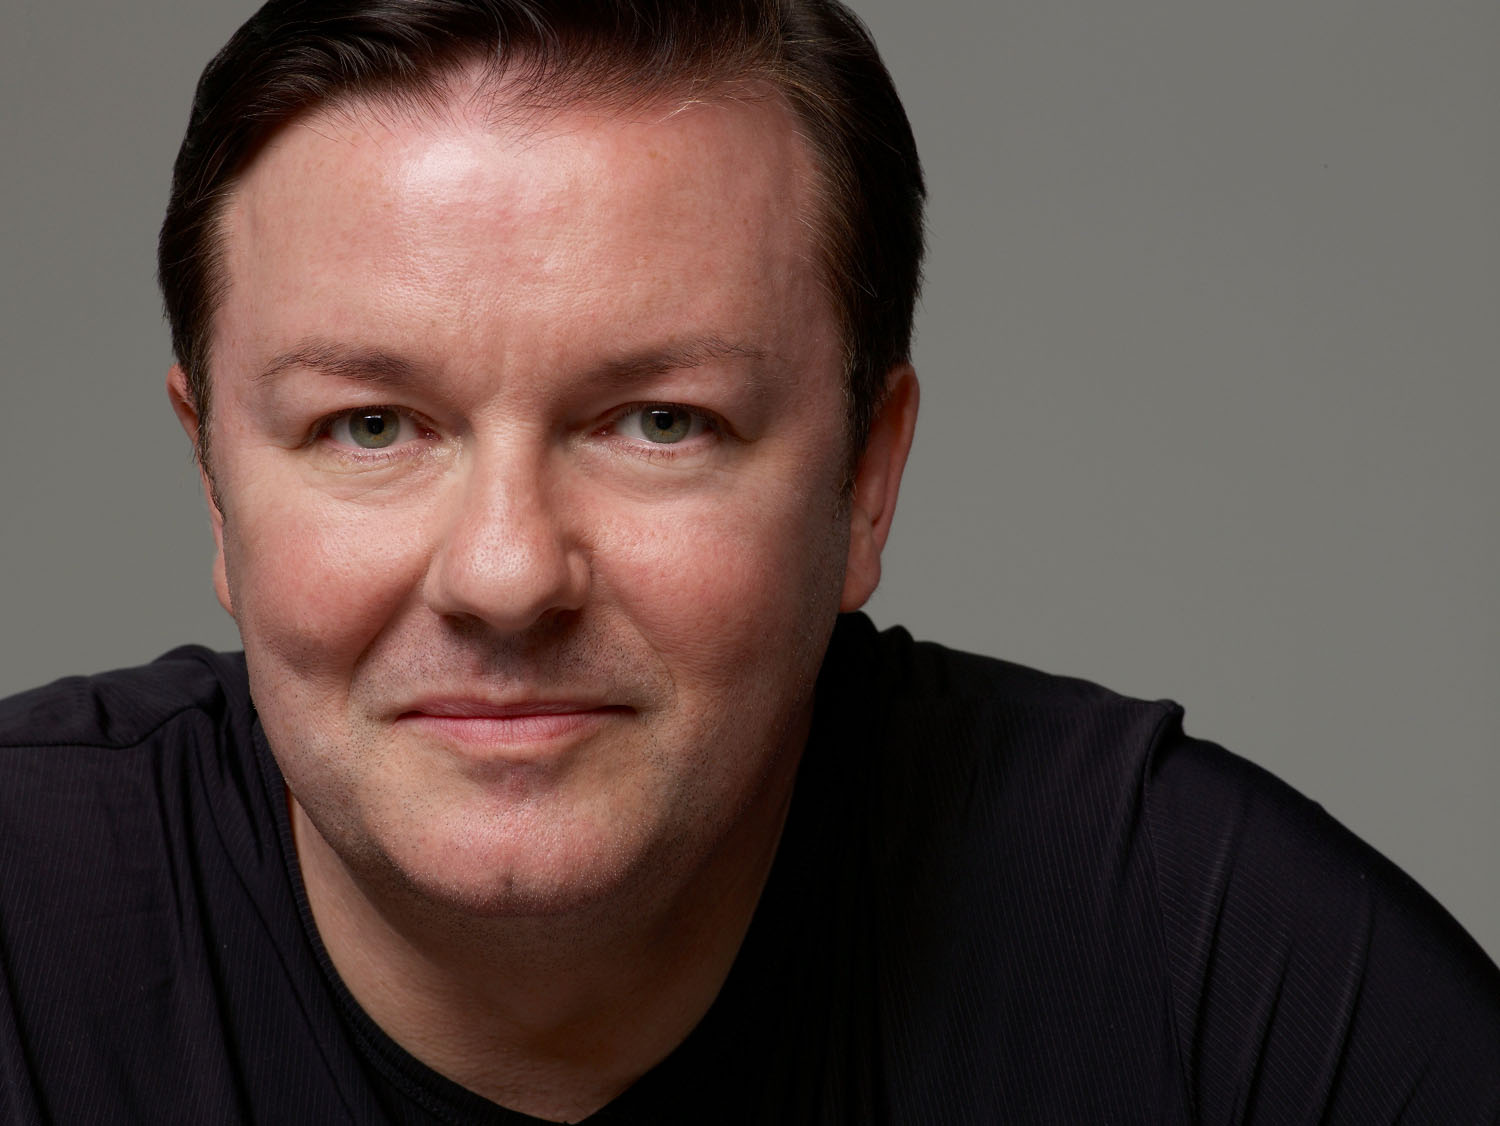 Ricky Gervais Screensavers